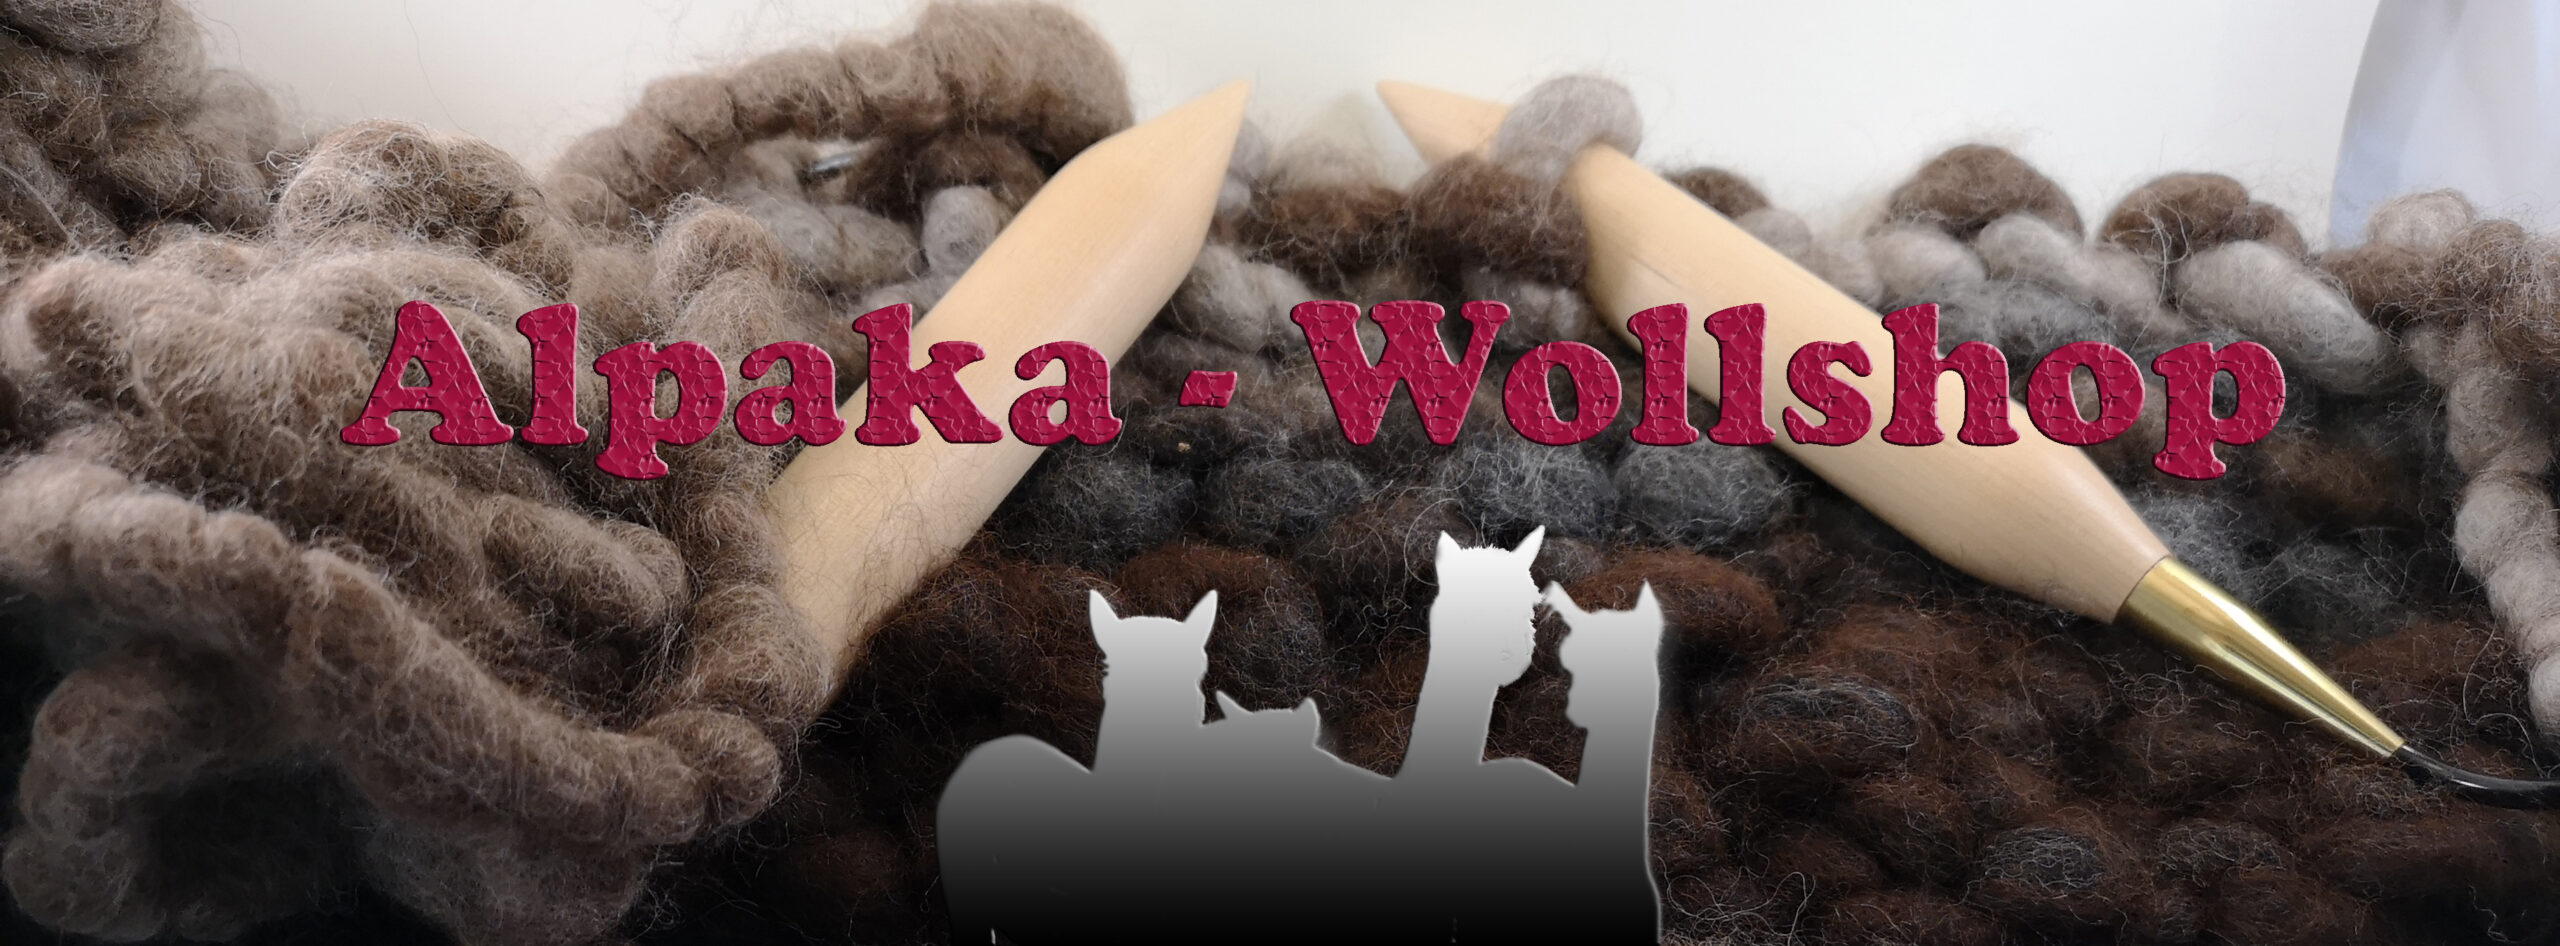 Alpaka-Wollshop